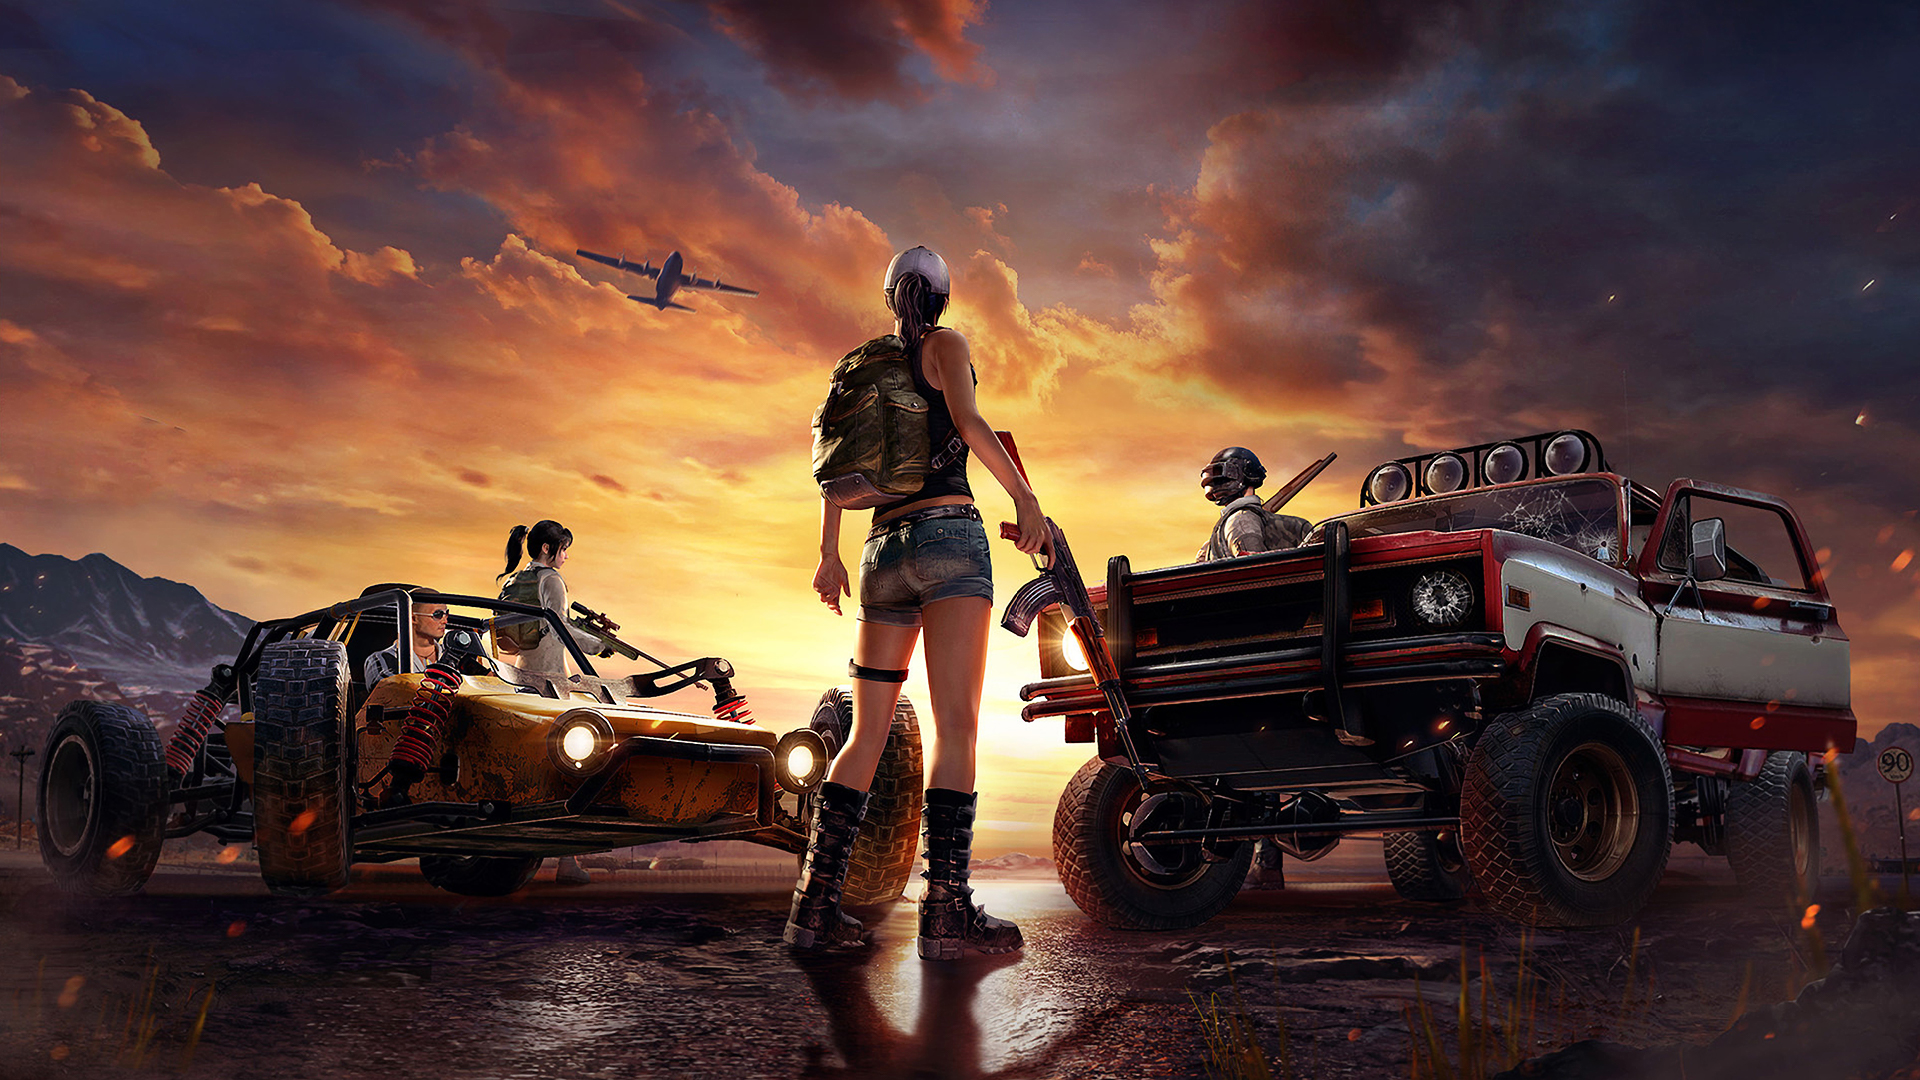 Playerunknown S Battlegrounds Wallpapers: 1920x1080 PlayerUnknowns Battlegrounds Art Laptop Full HD